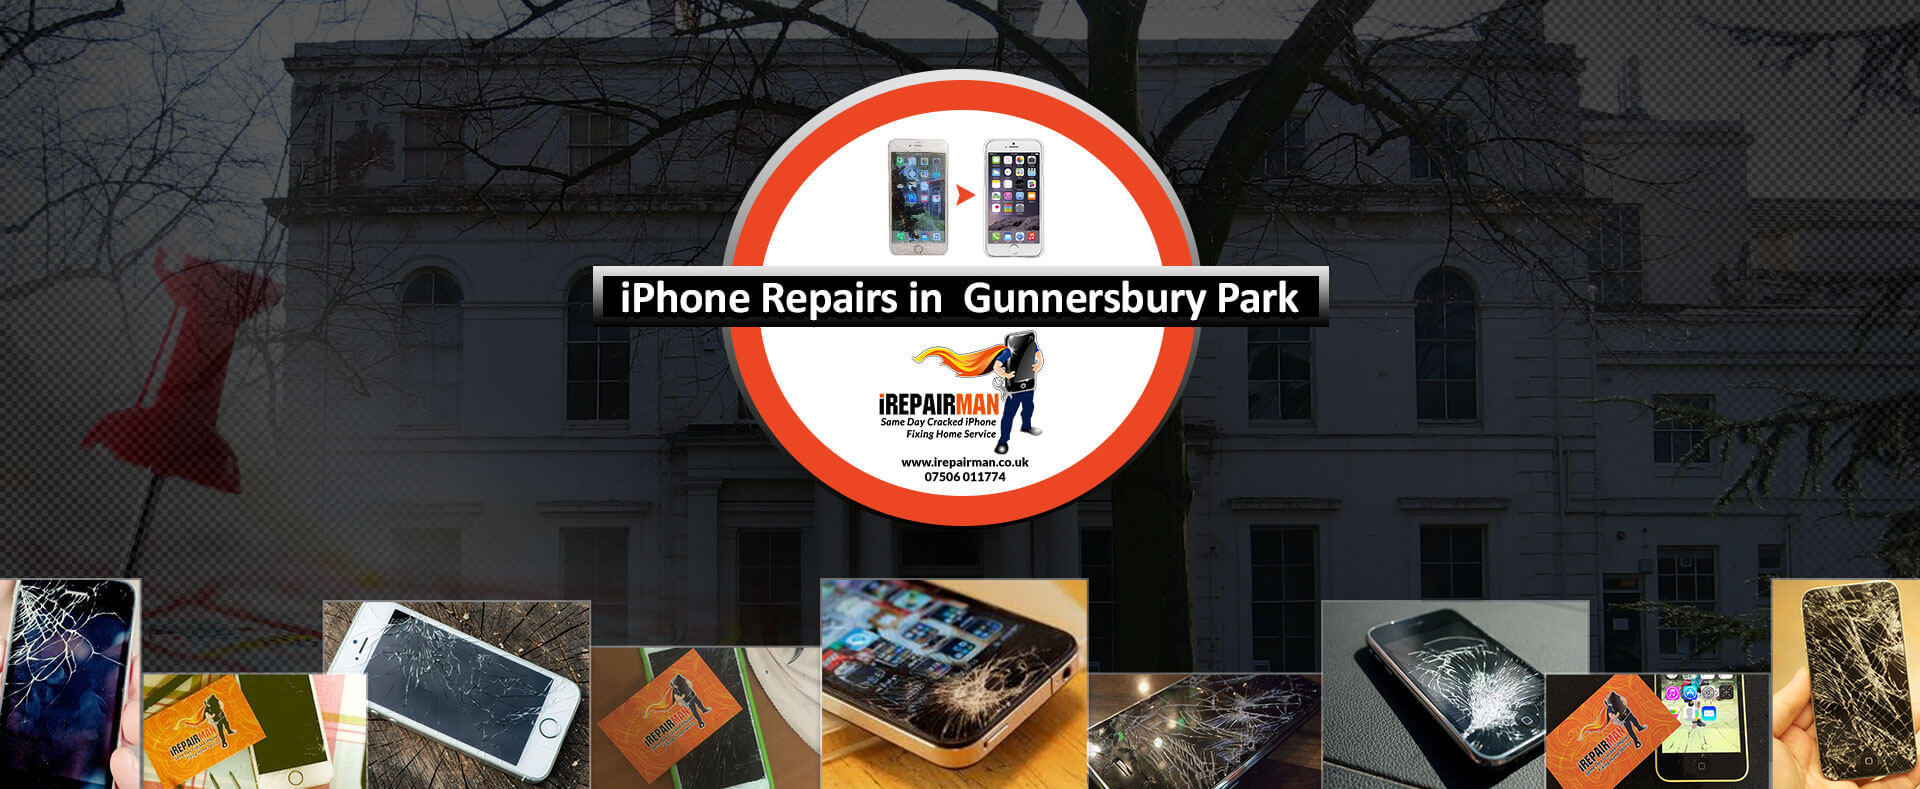 iPhone Repairs in Gunnersbury Park